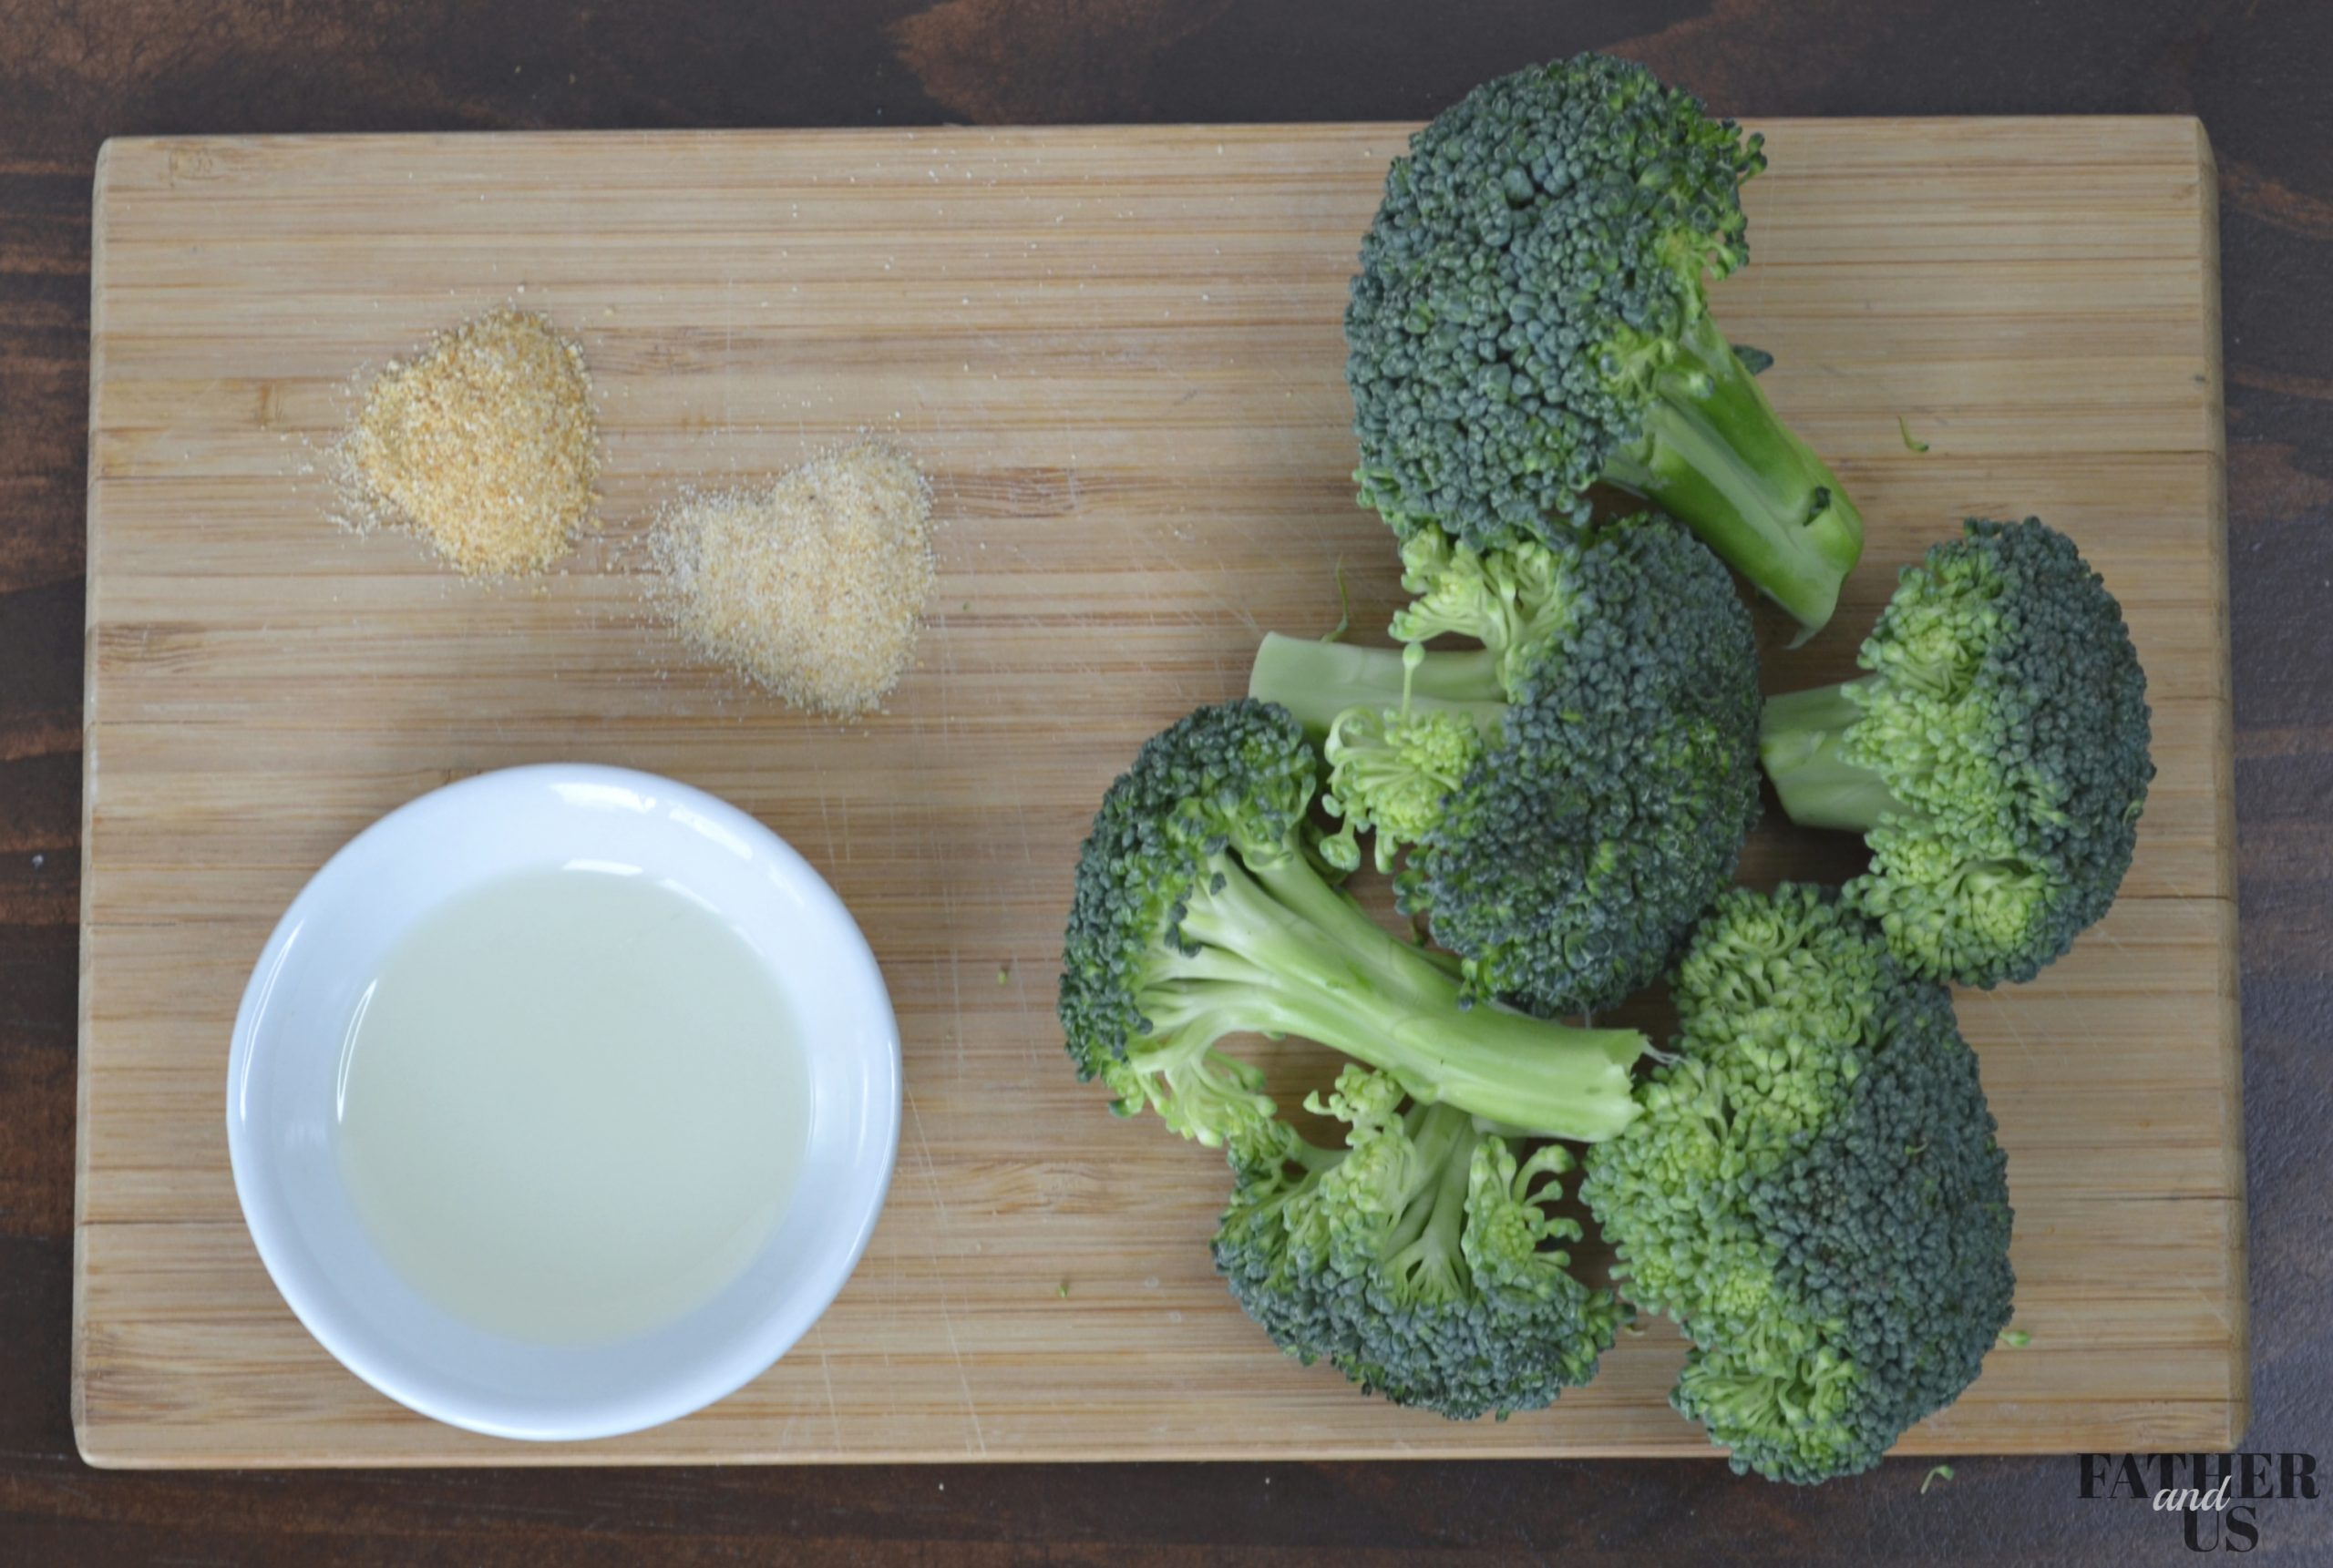 Air Fryer Broccoli Ingredients